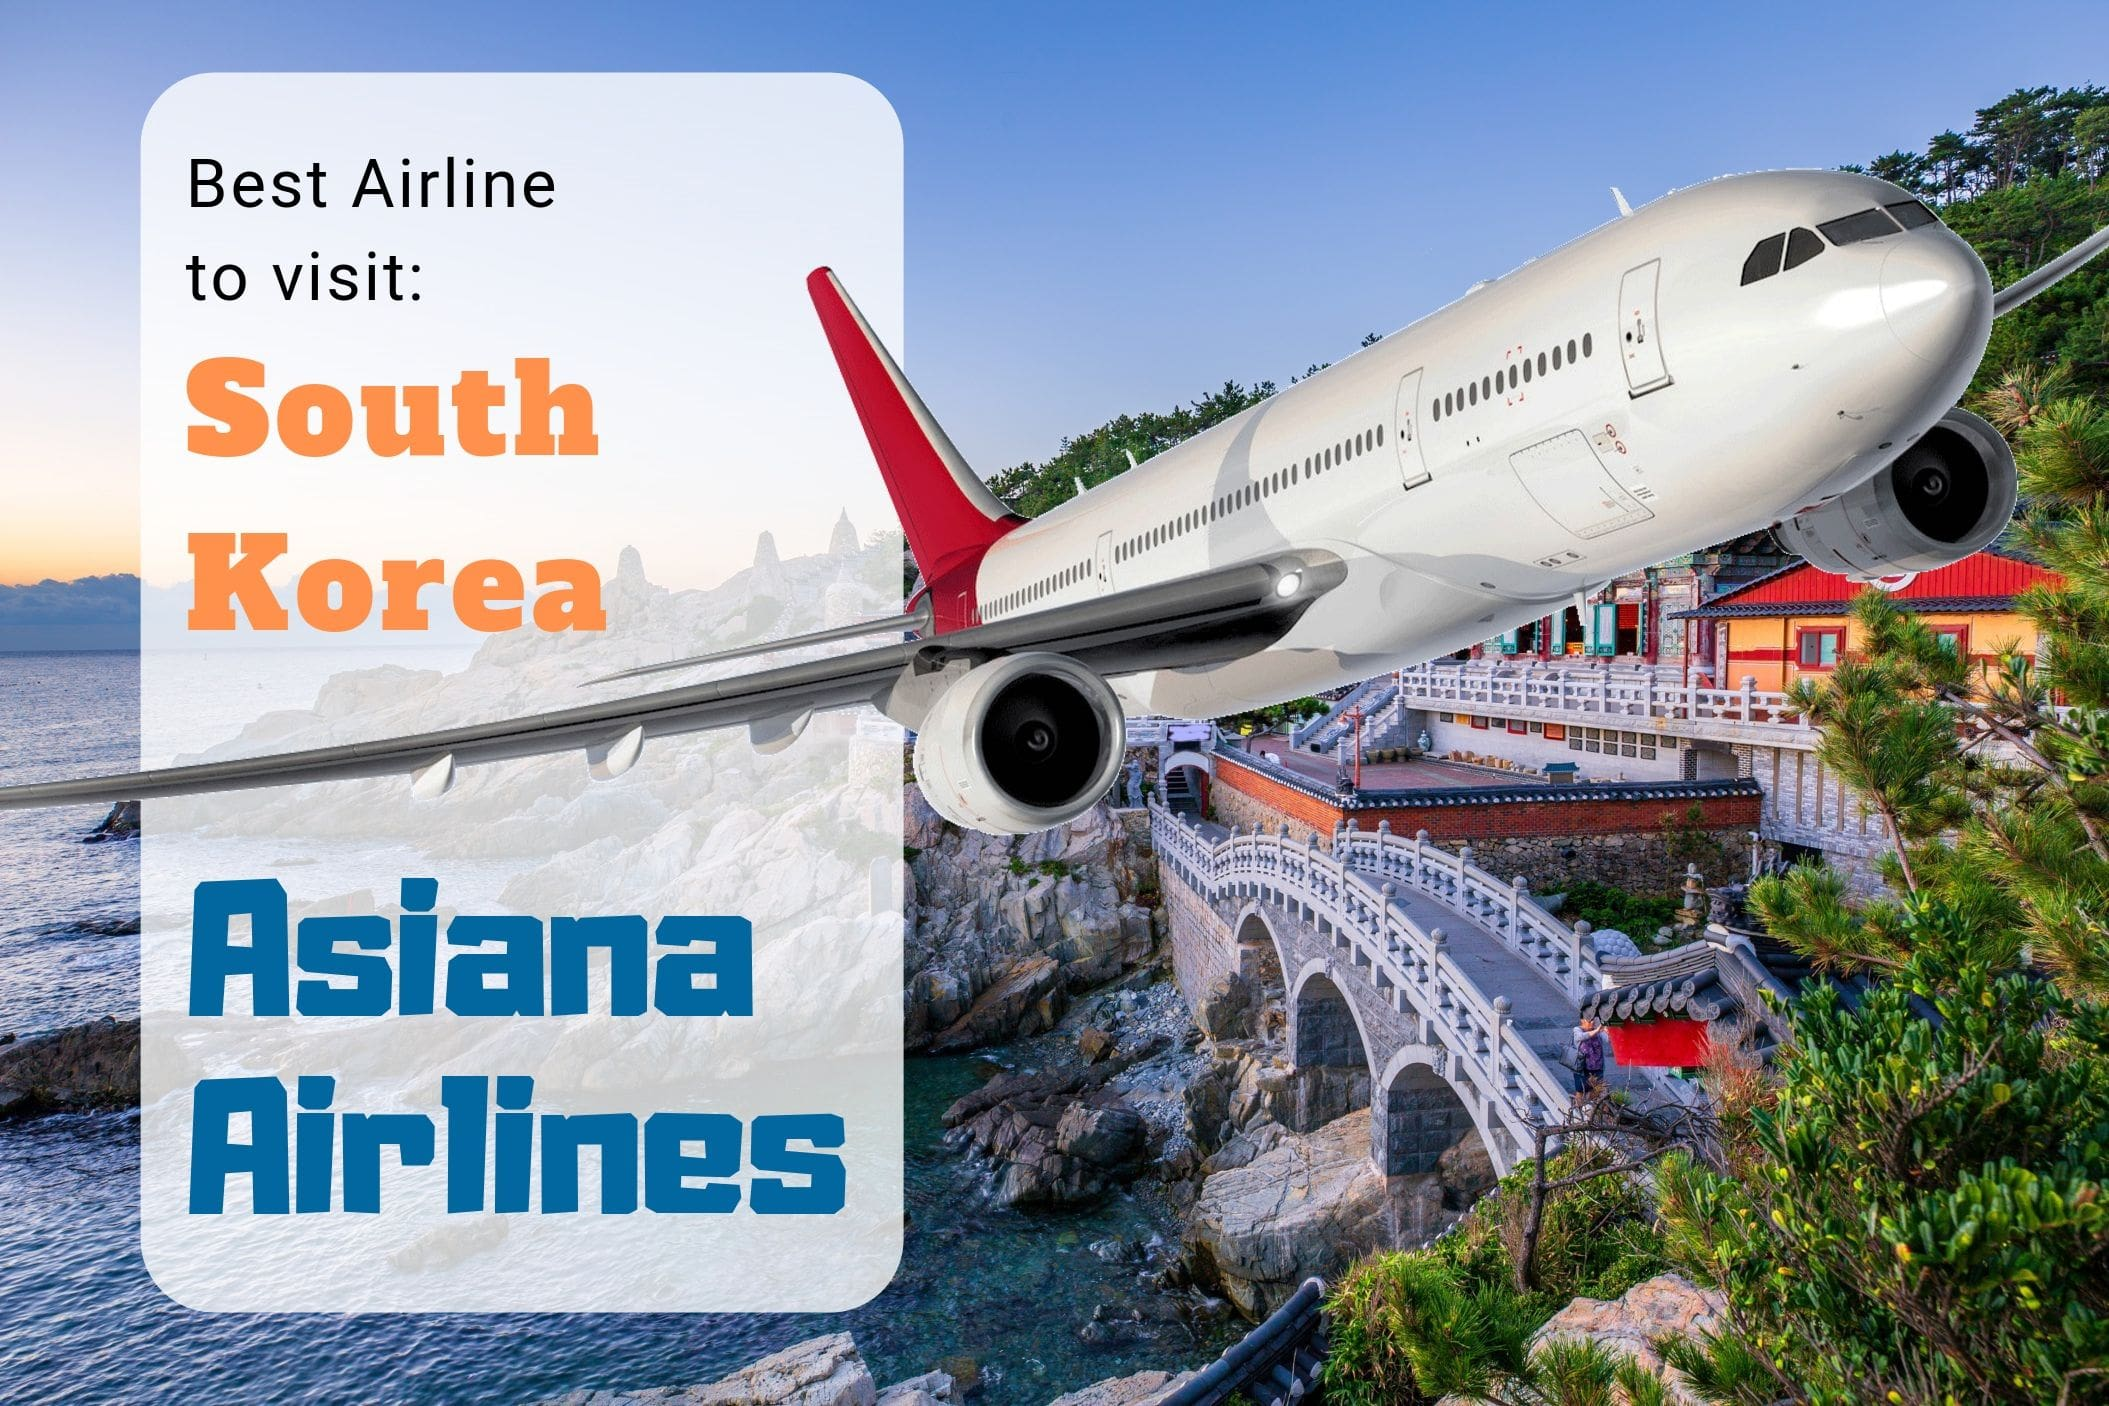 2019-10-23-10-15-182019-09-25-09-41-26Best Airline to visit South Korea-min